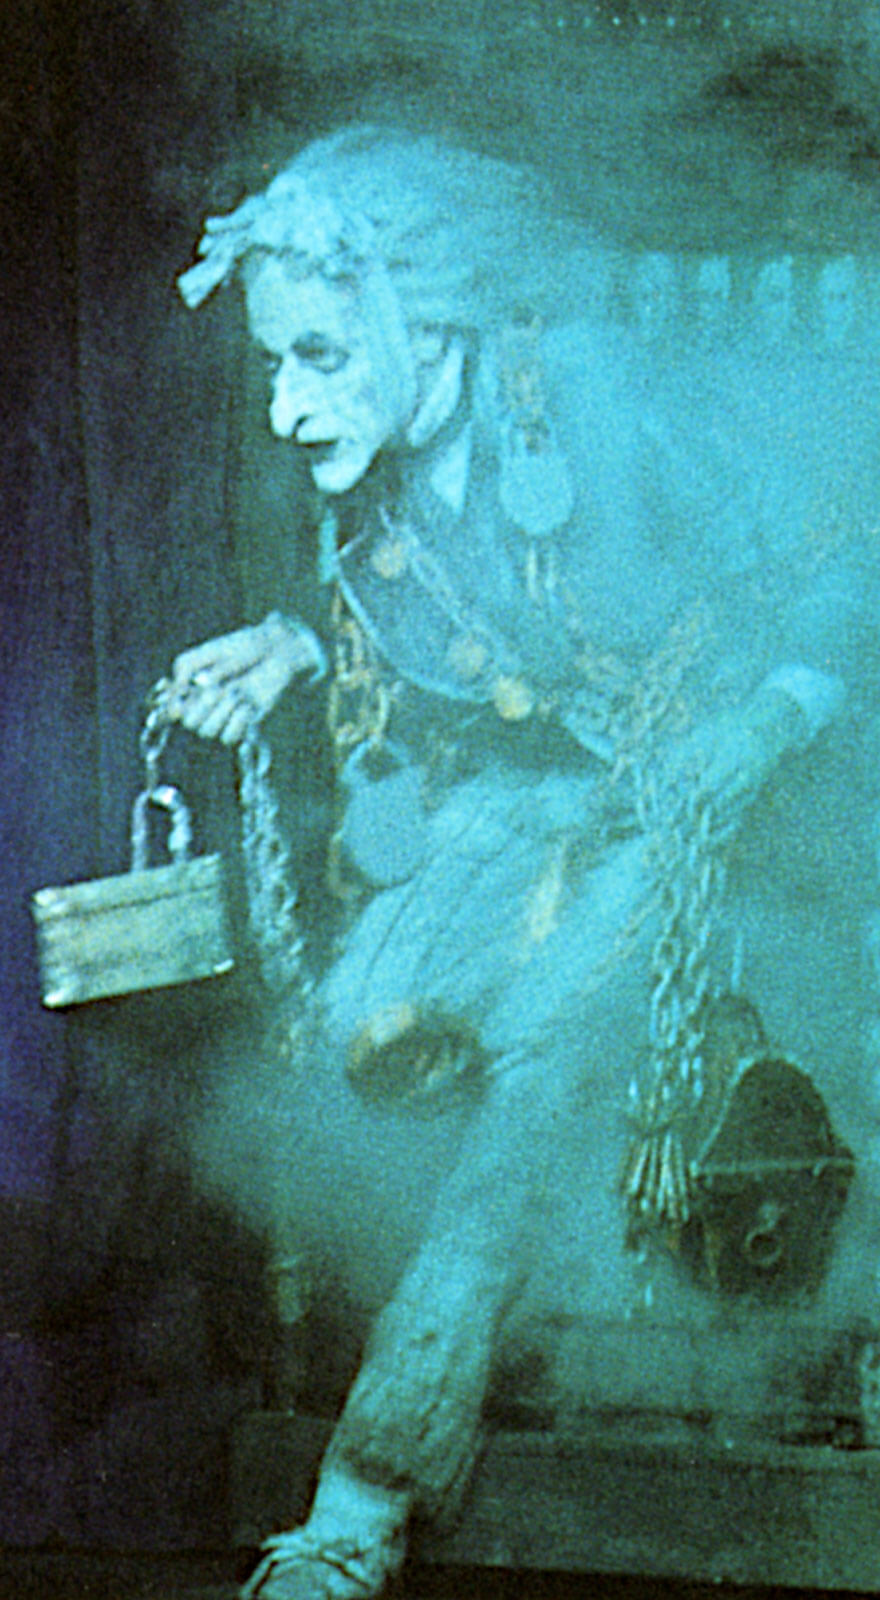 Marley's first entrance: a ghostly man entering through blue and grey smoke.